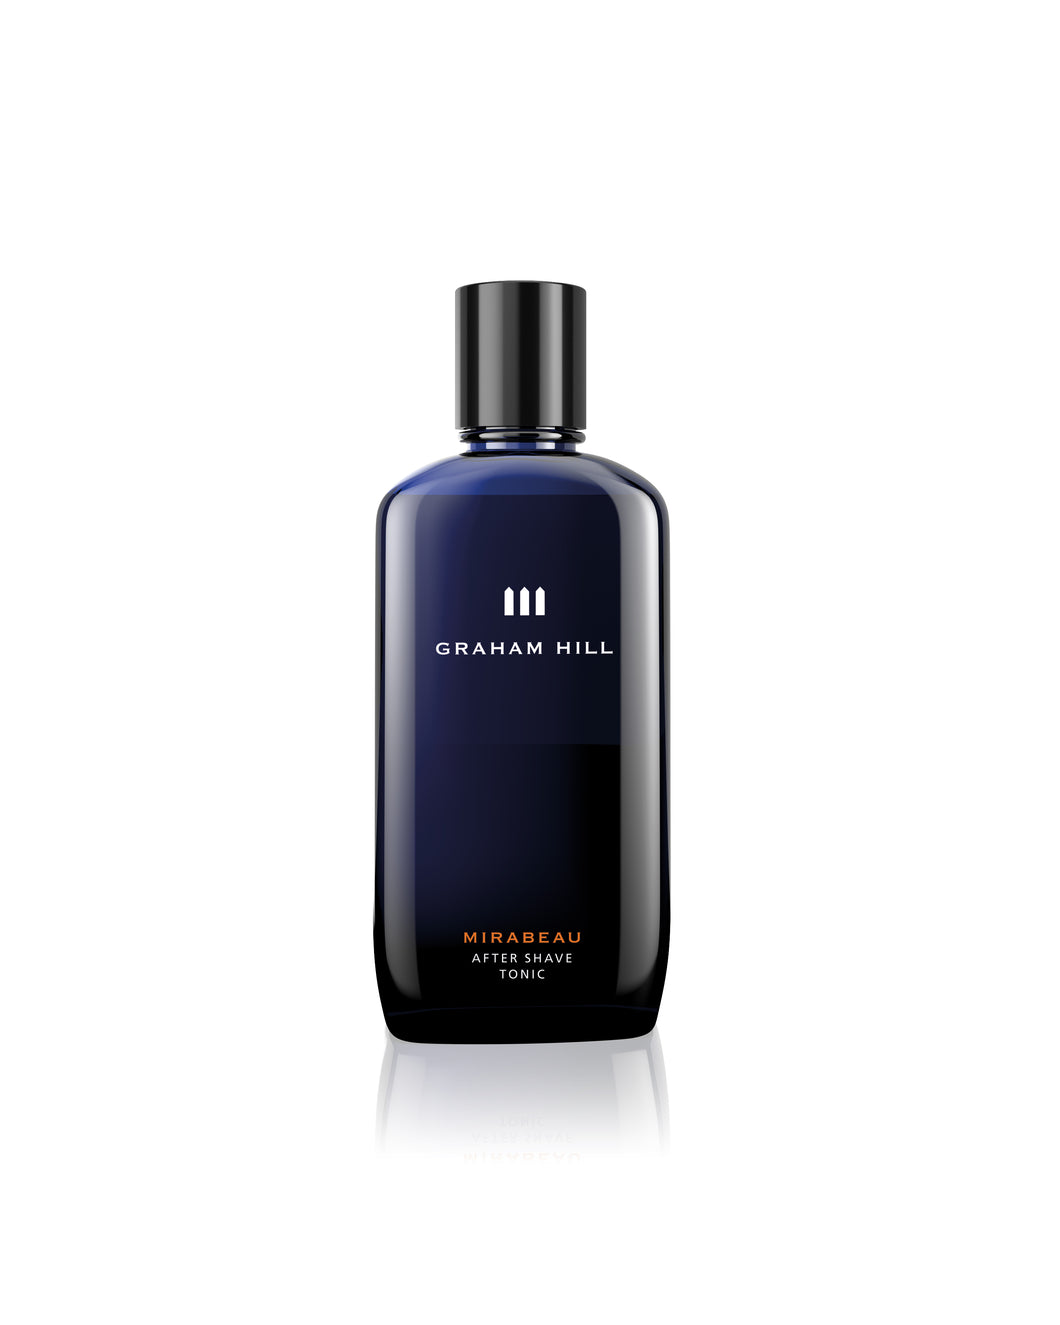 Graham Hill - MIRABEAU After Shave Tonic